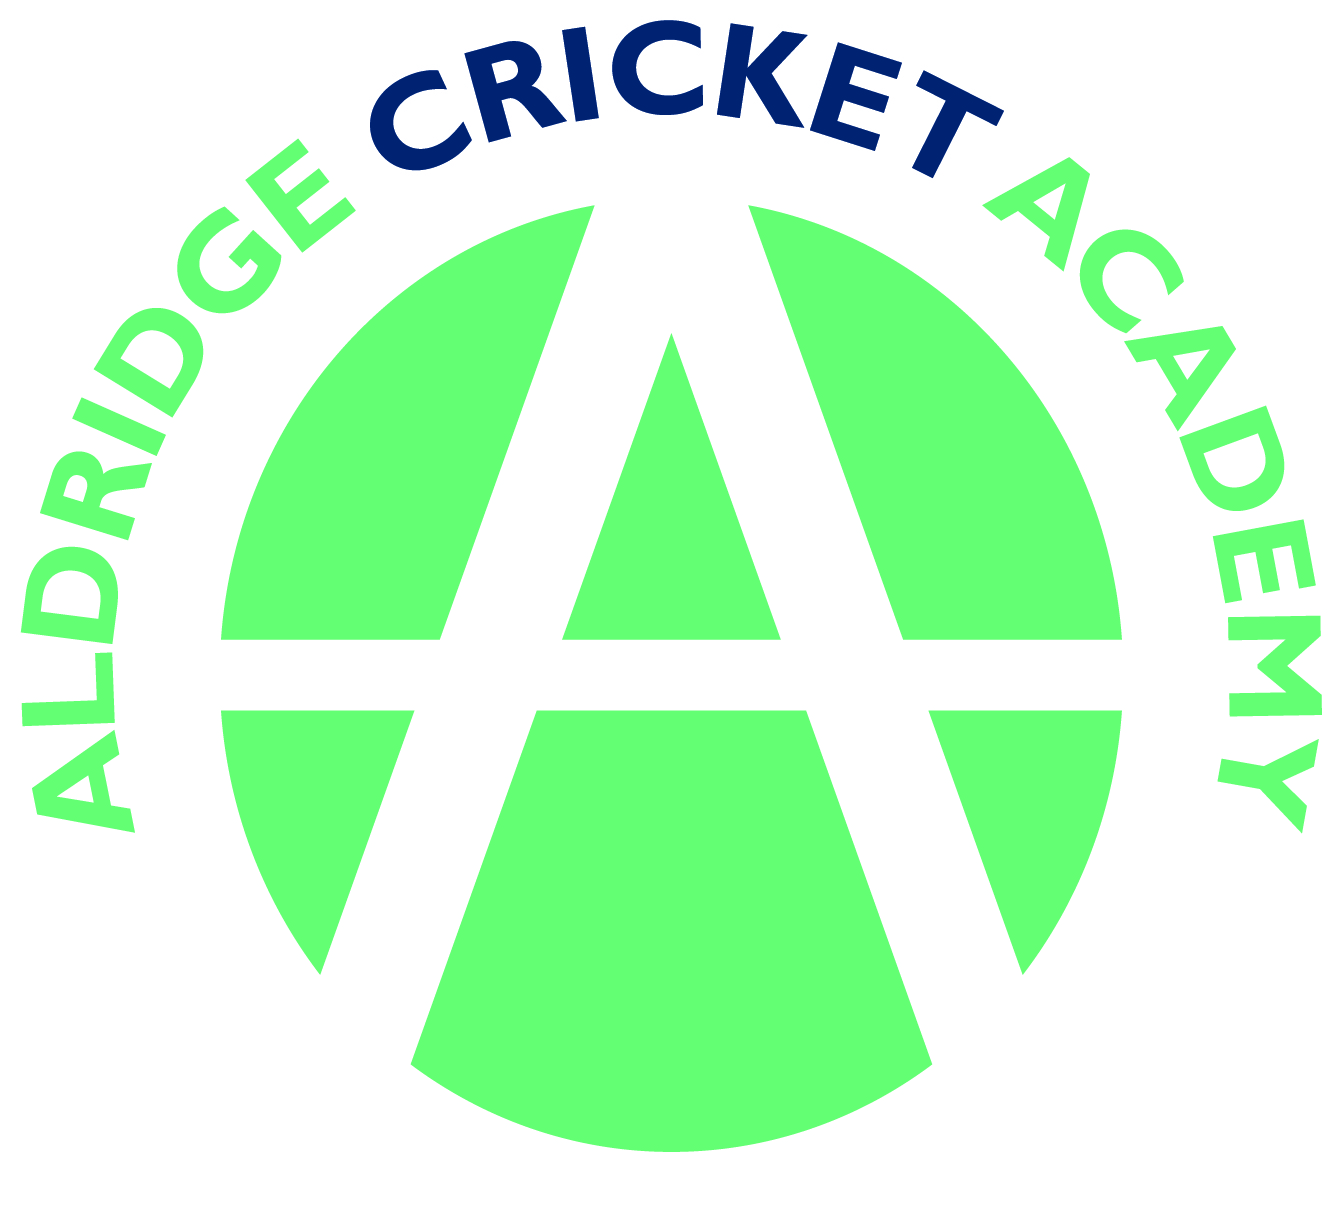 Aldridge Cricket Academy